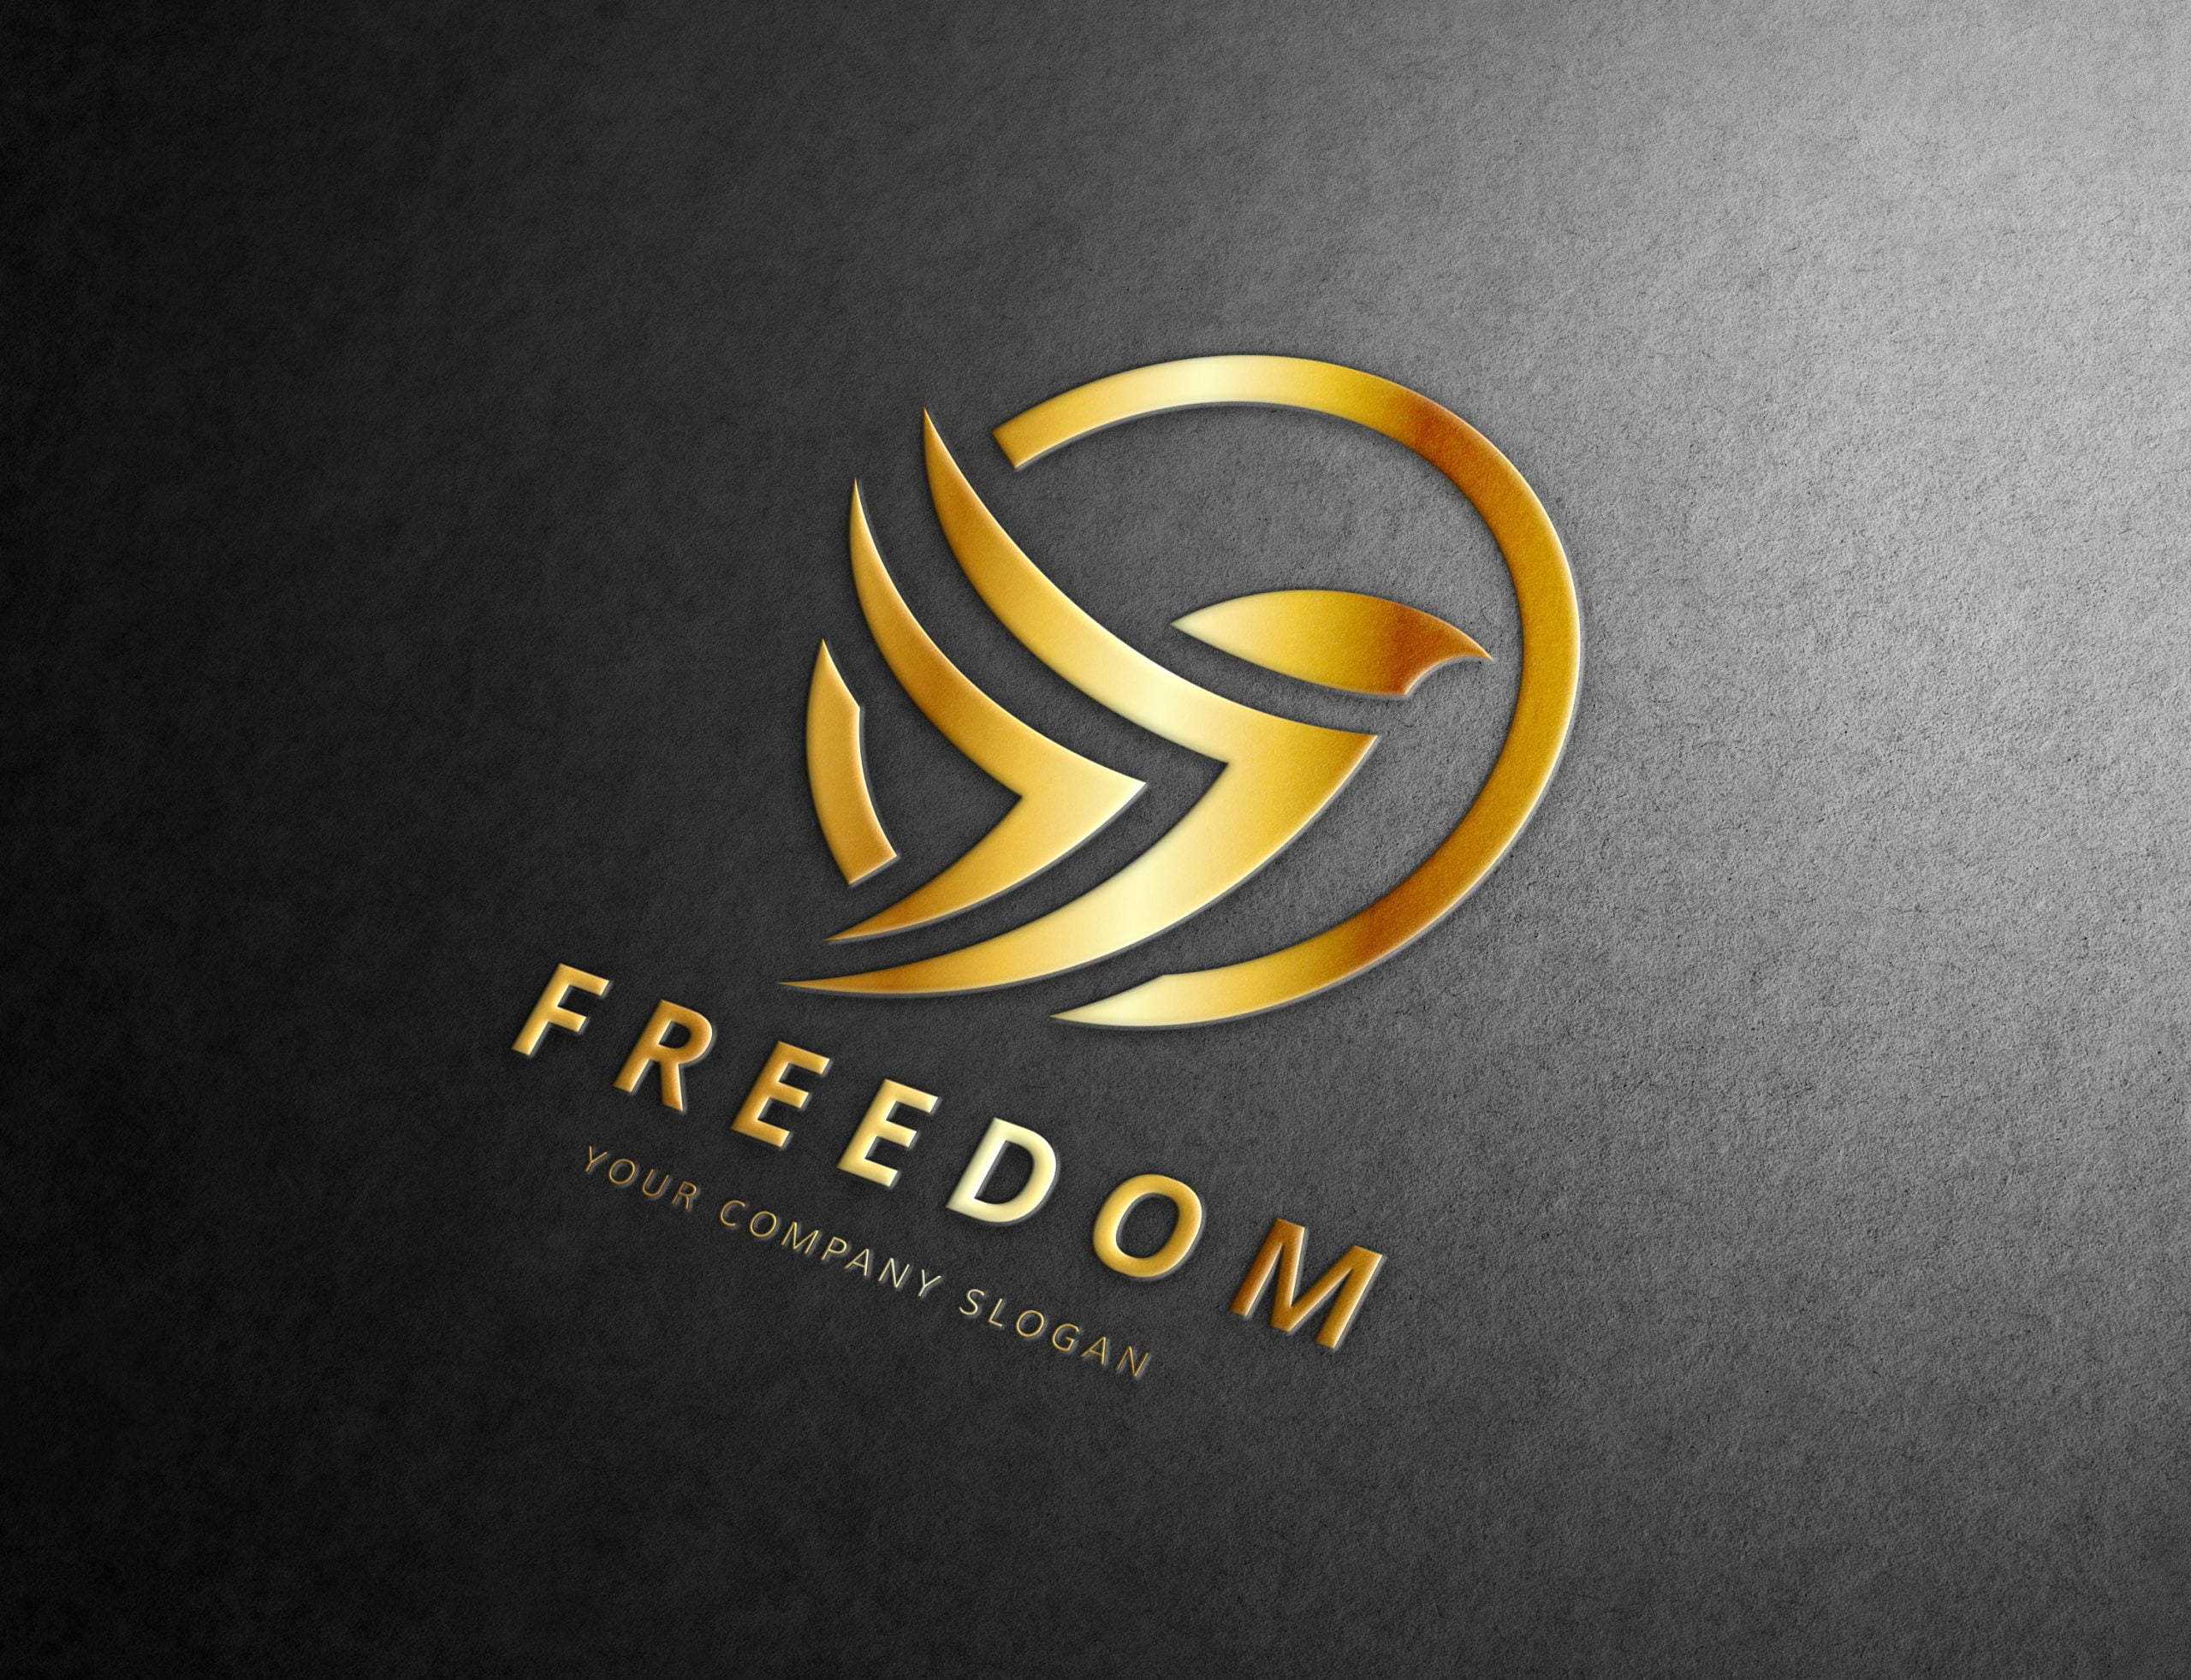 Free-Gold-Foil-Logo-Mockup-with-No-Water-Drops